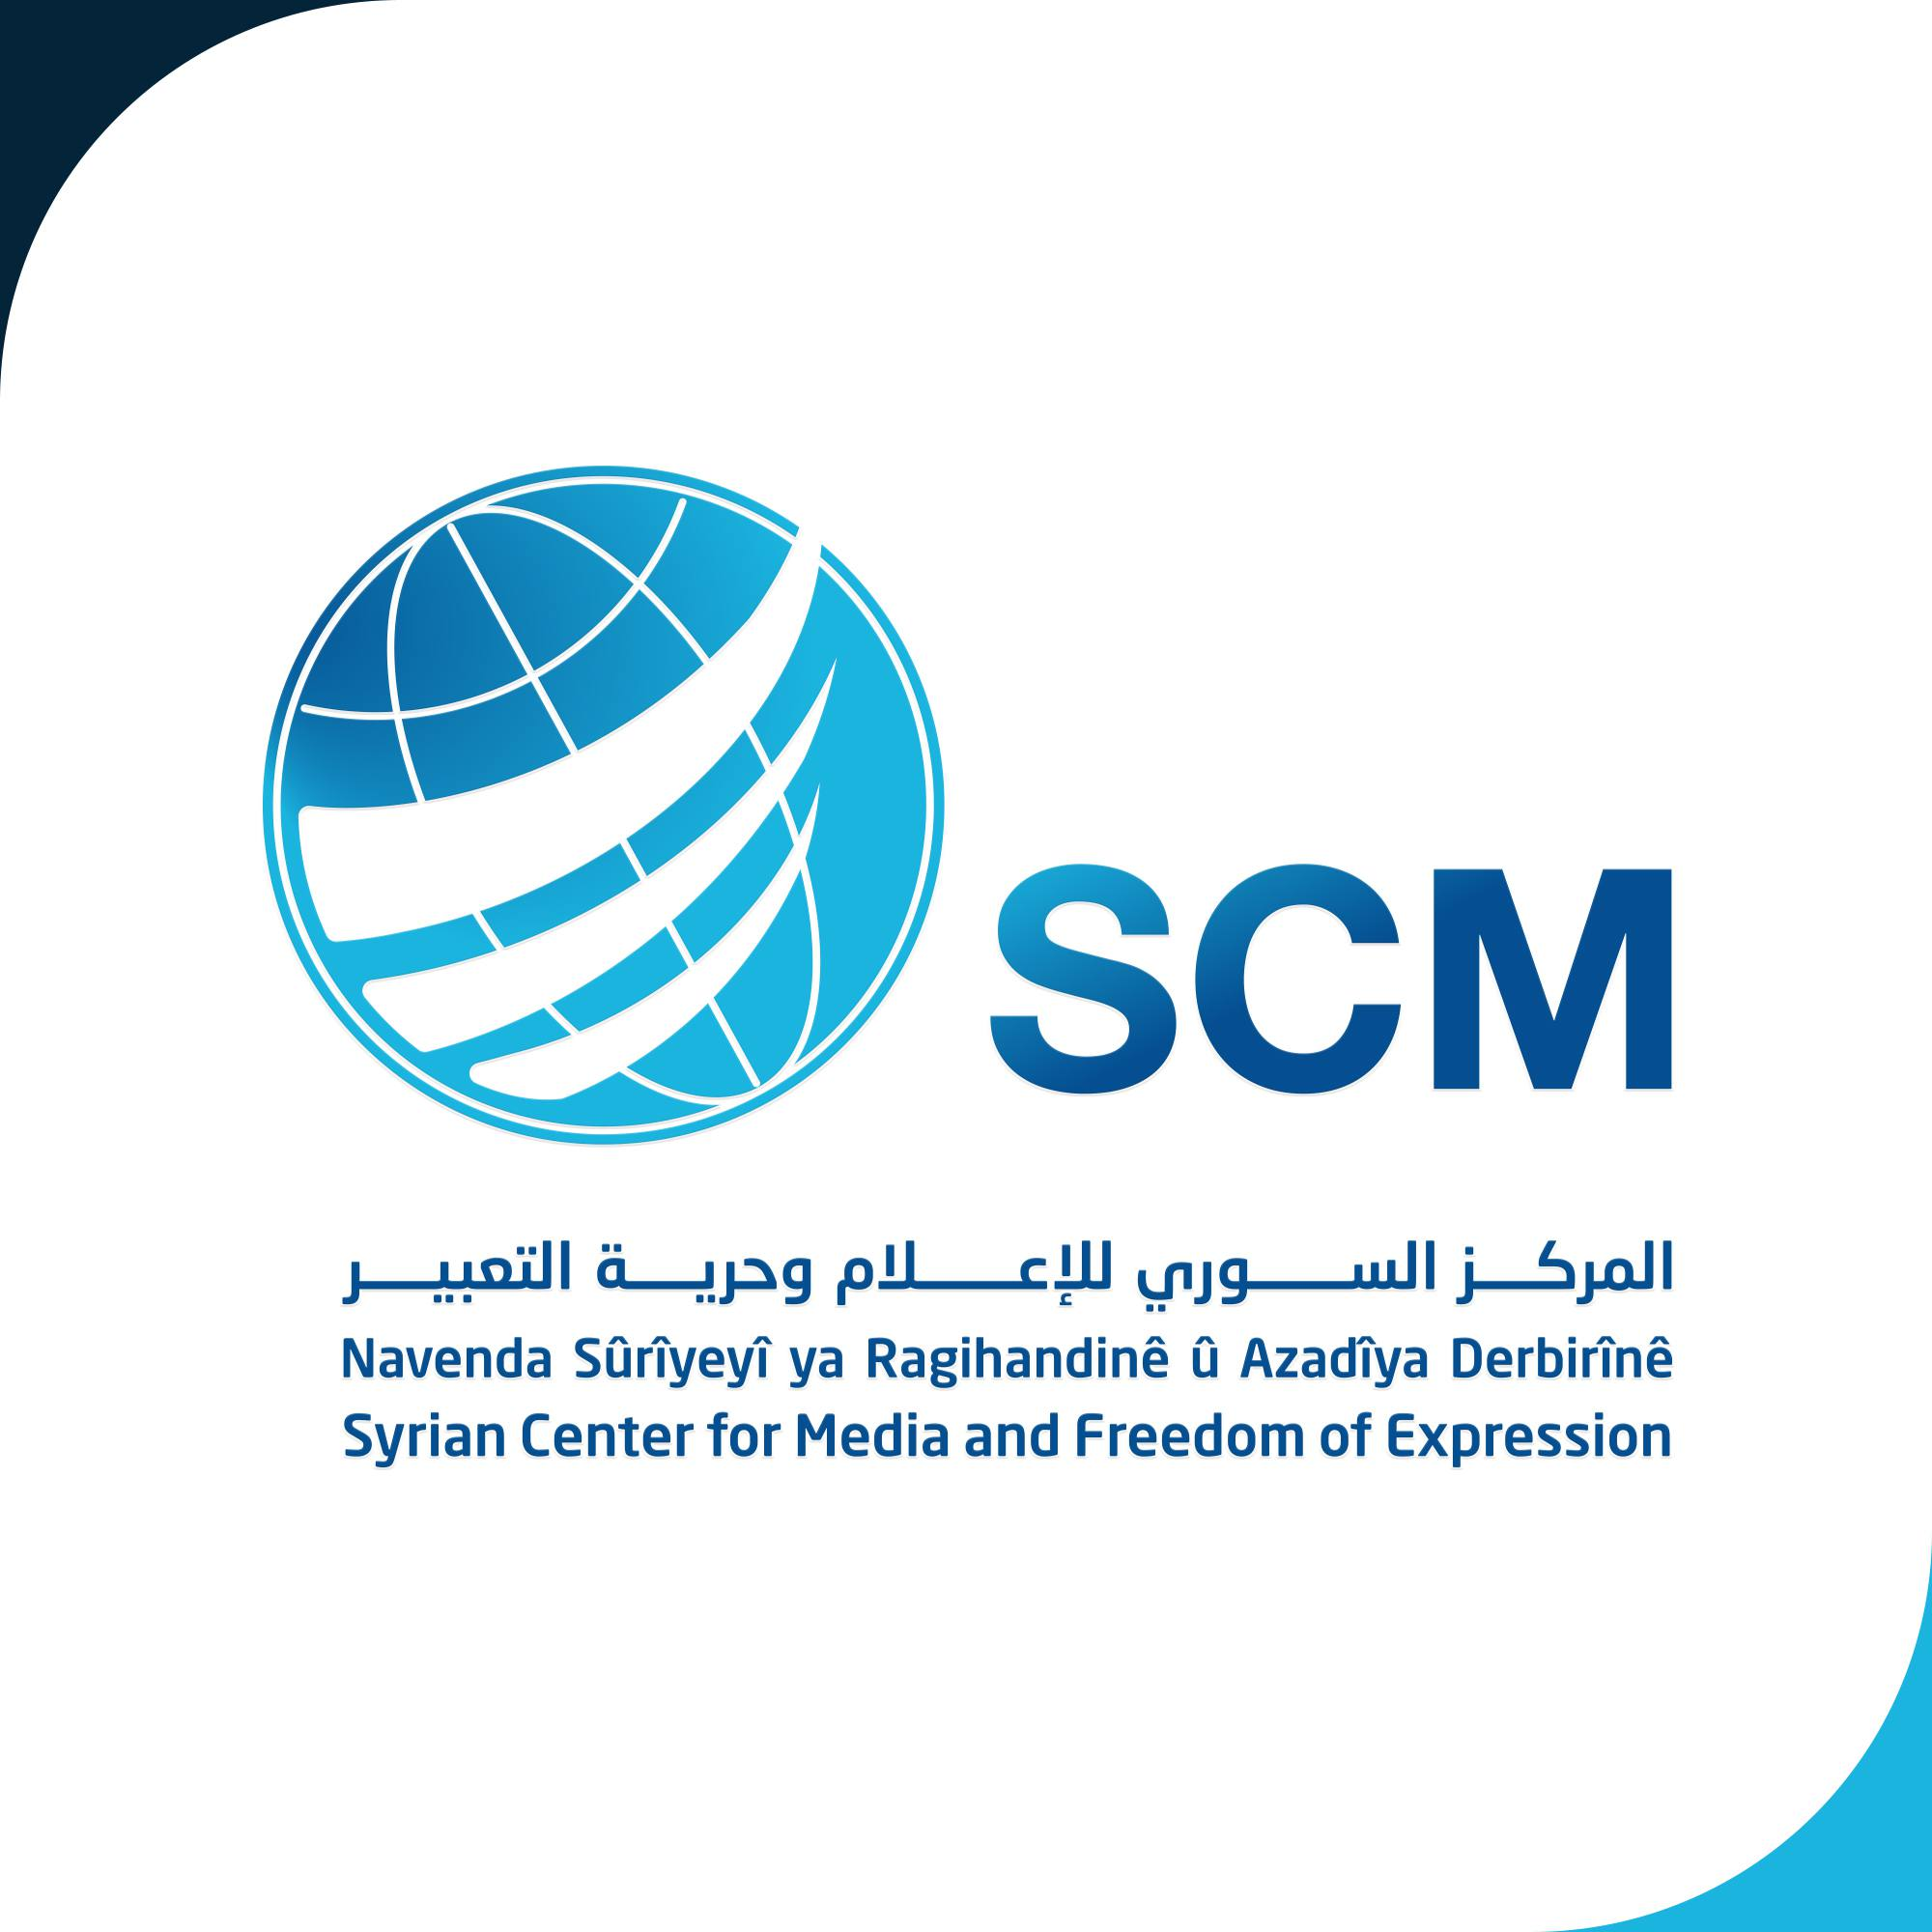 Call for the protection of journalists stranded in Southern Syria: Statement from the Syrian Center for Media and Freedom of Expression (SCM)